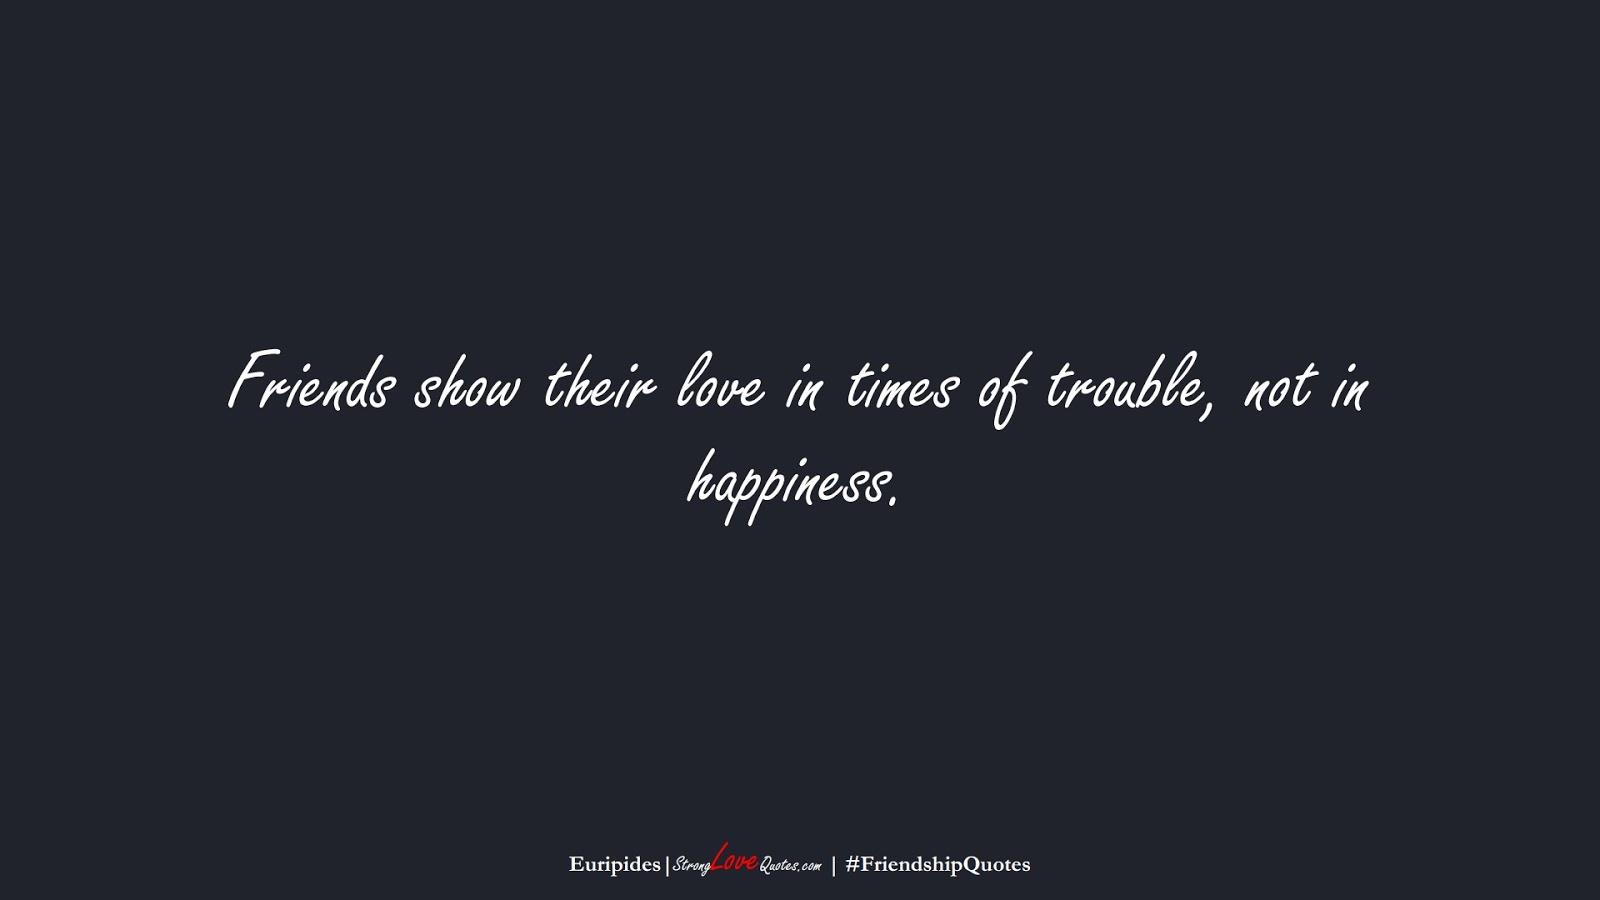 Friends show their love in times of trouble, not in happiness. (Euripides);  #FriendshipQuotes